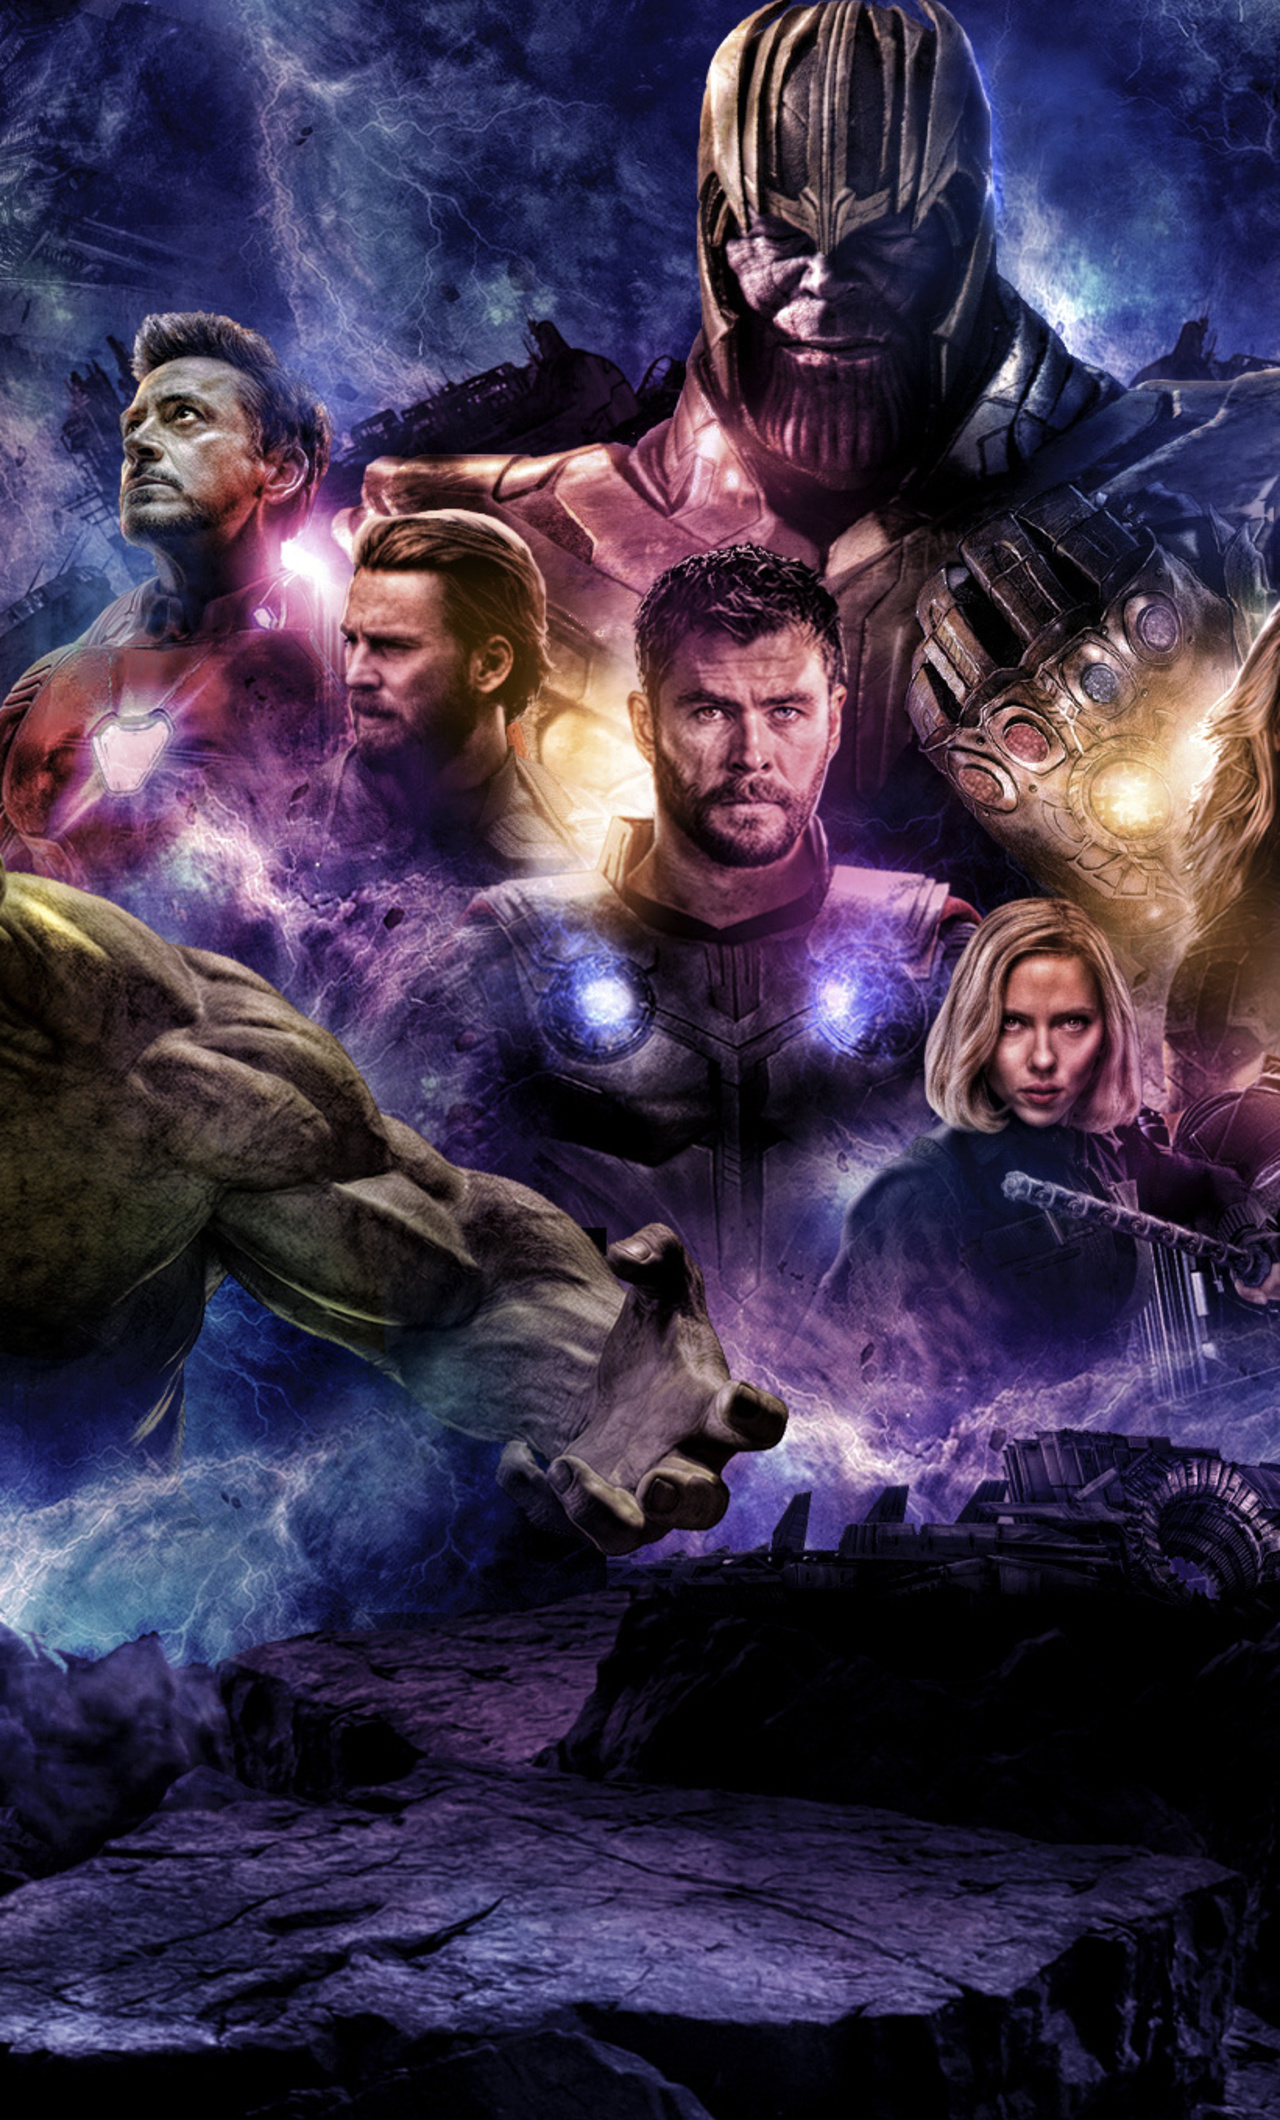 The Avengers Movie Poster Hd